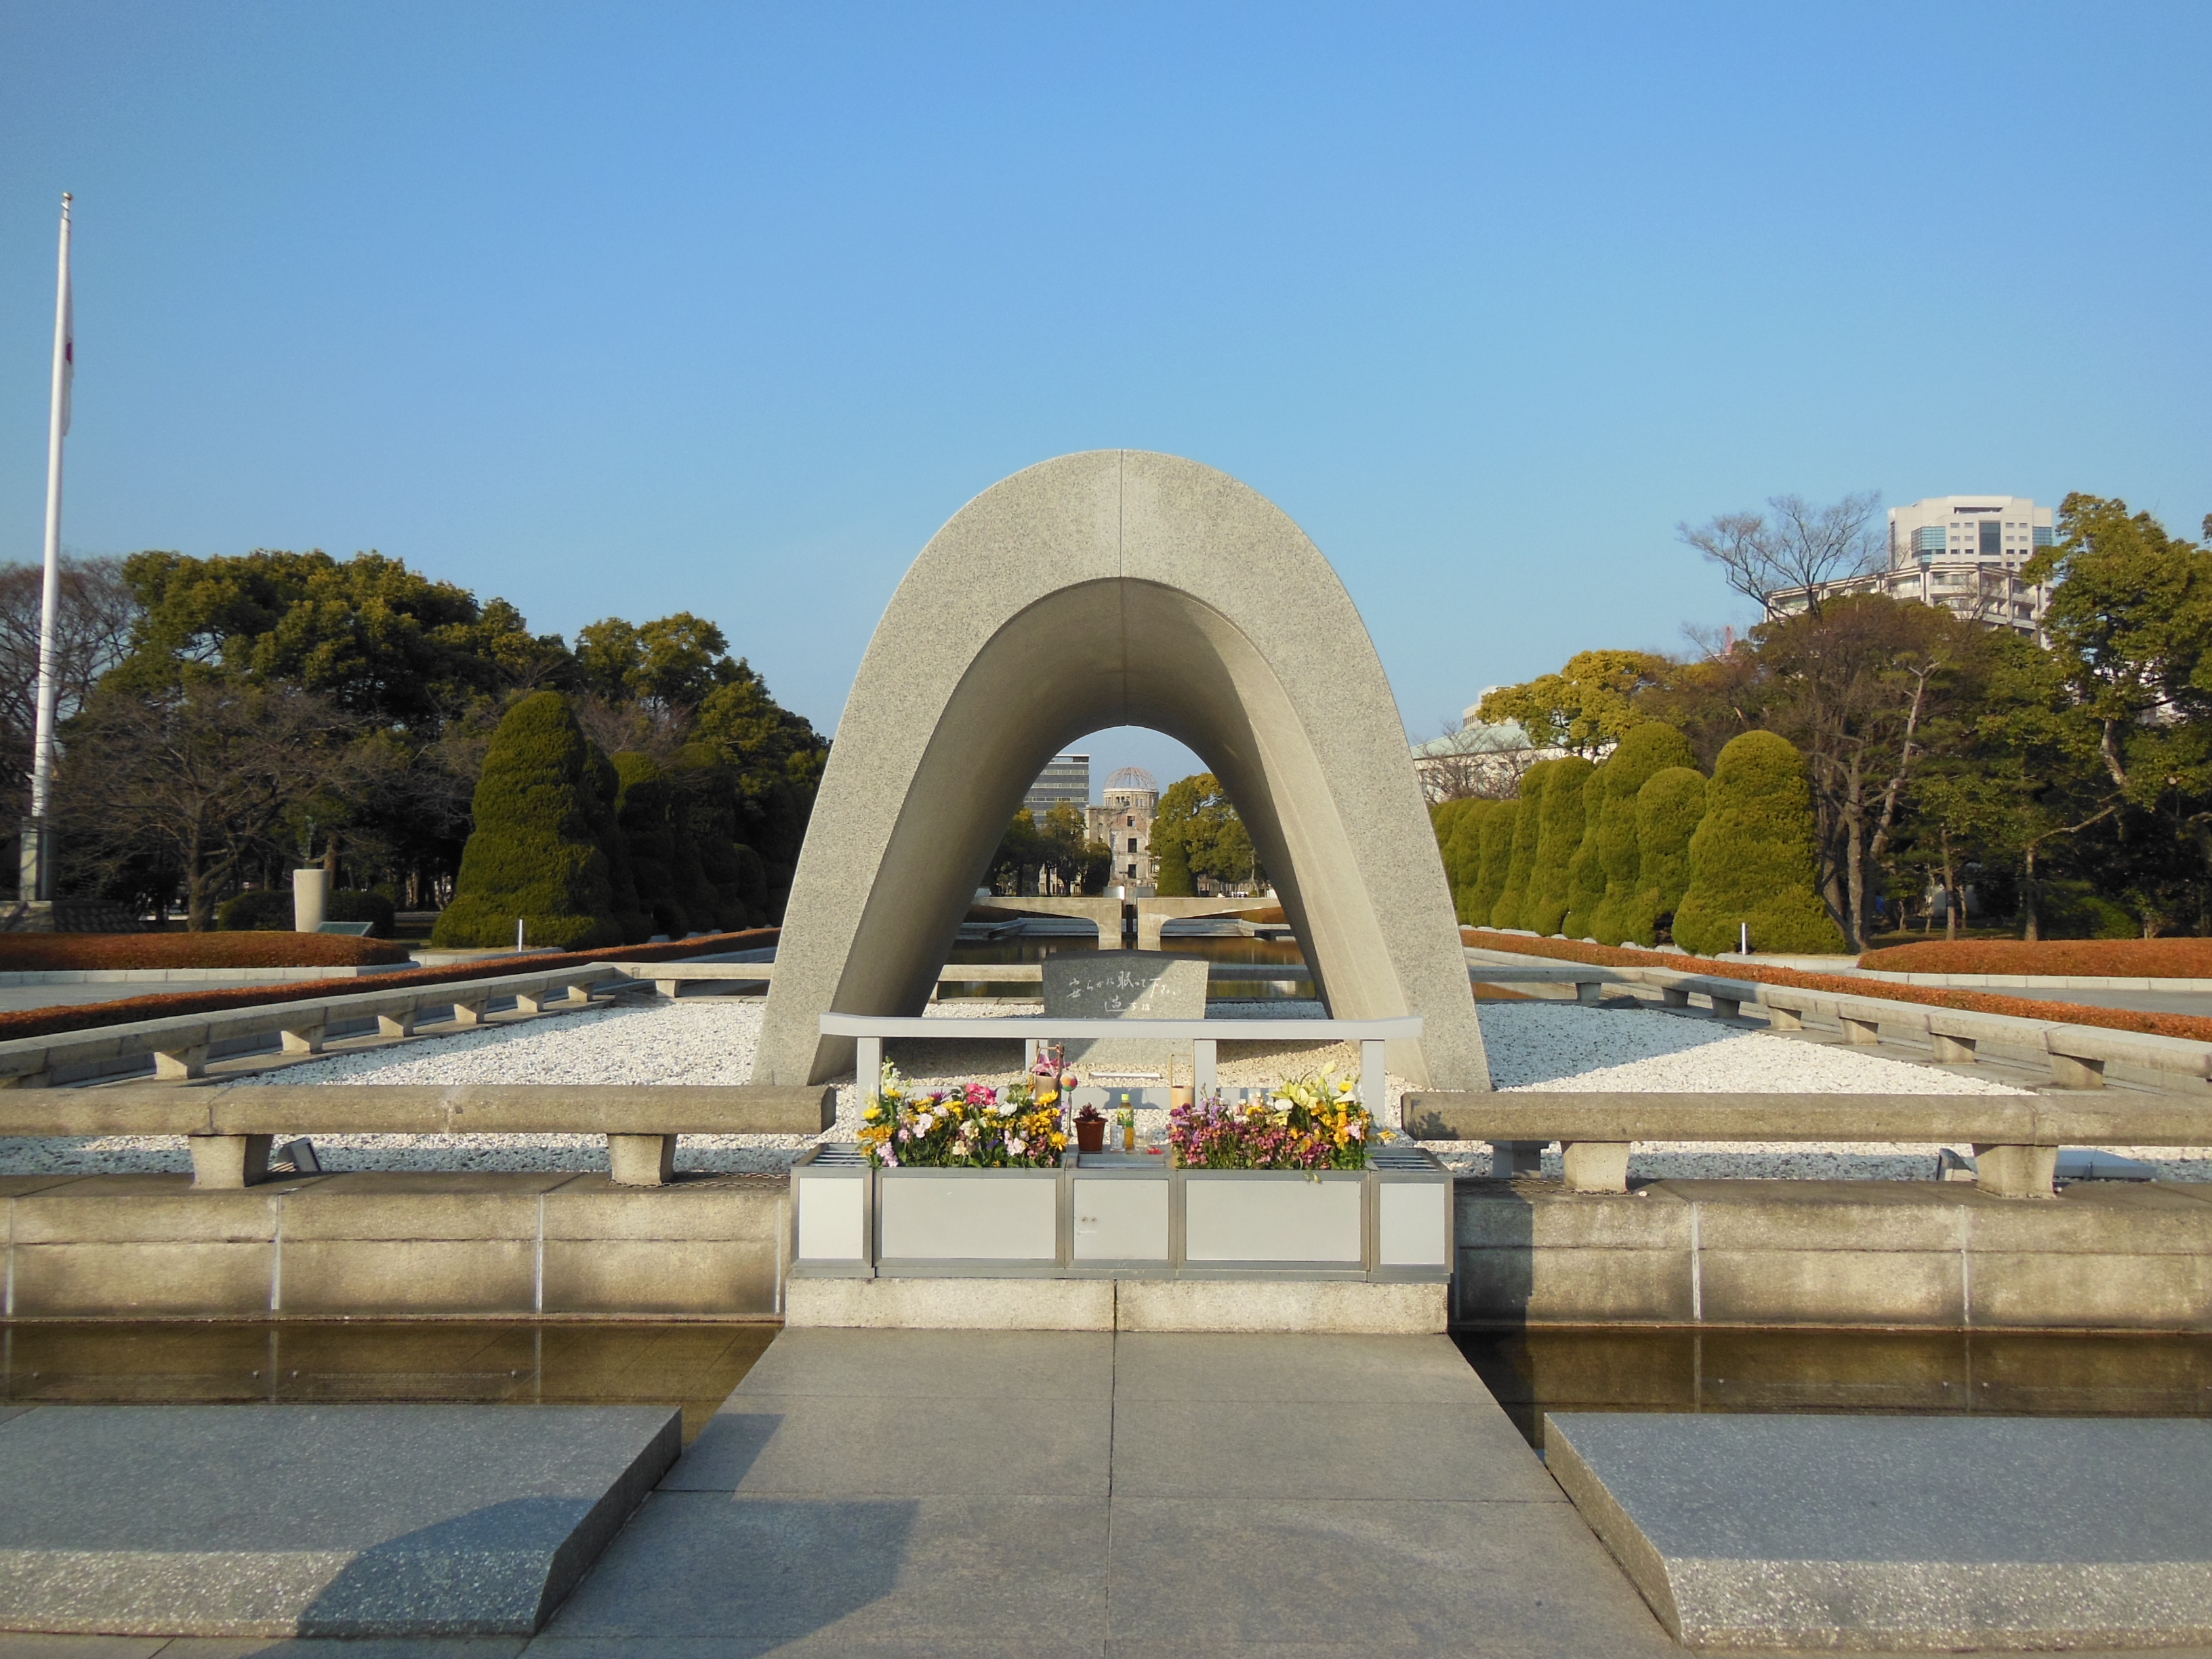 Hiroshima, Japan, Friedenspark, Gedenkmonument, Opfer, Grabstein